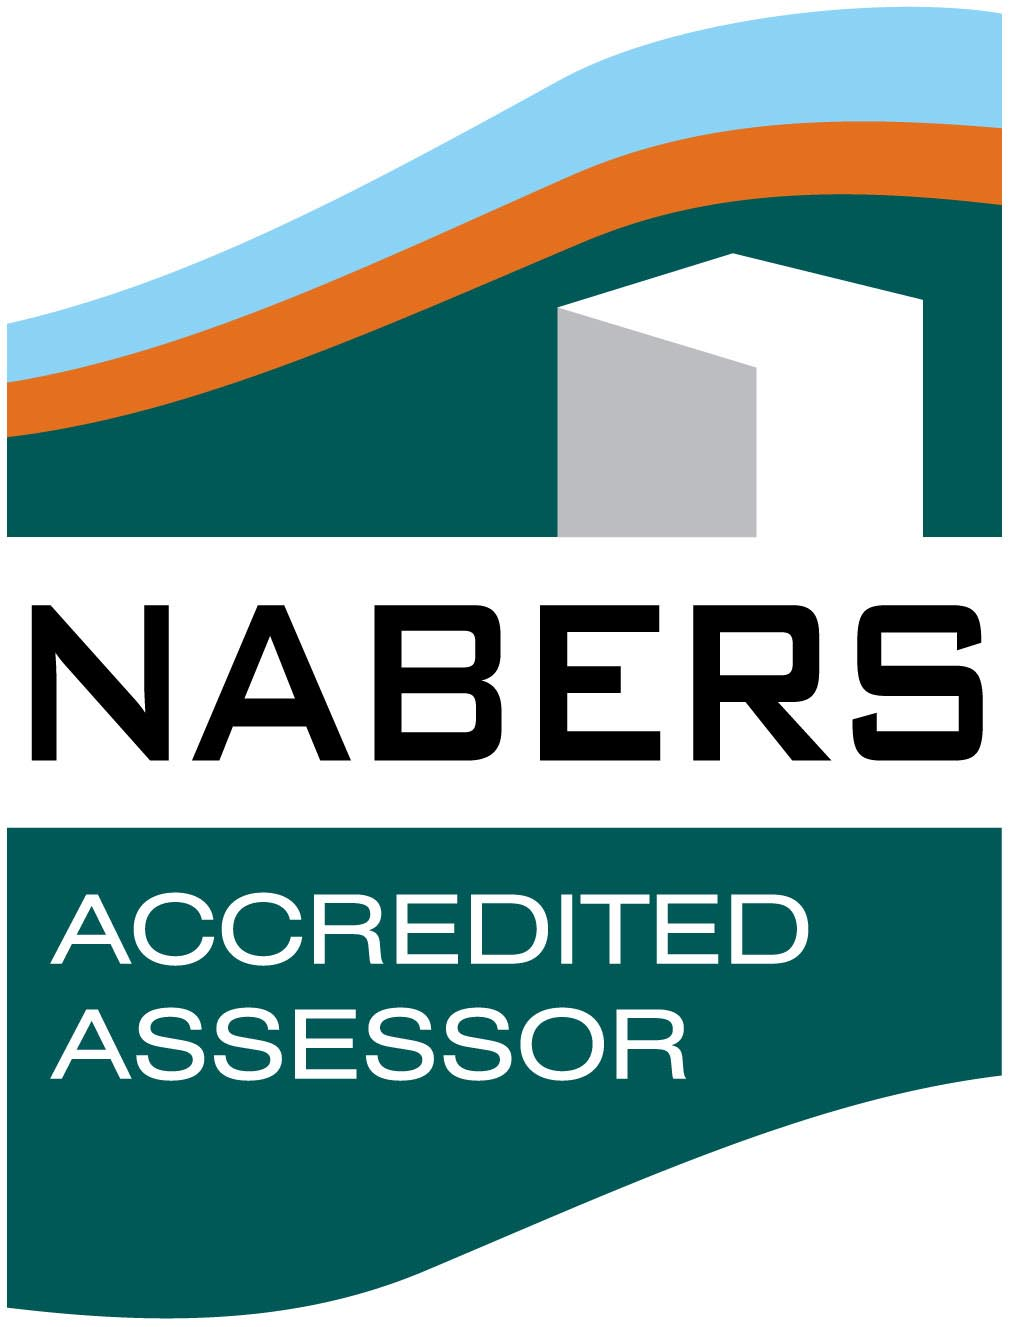 Nabers-Accredited-Assessor-symbol_RGB-use-for-digital